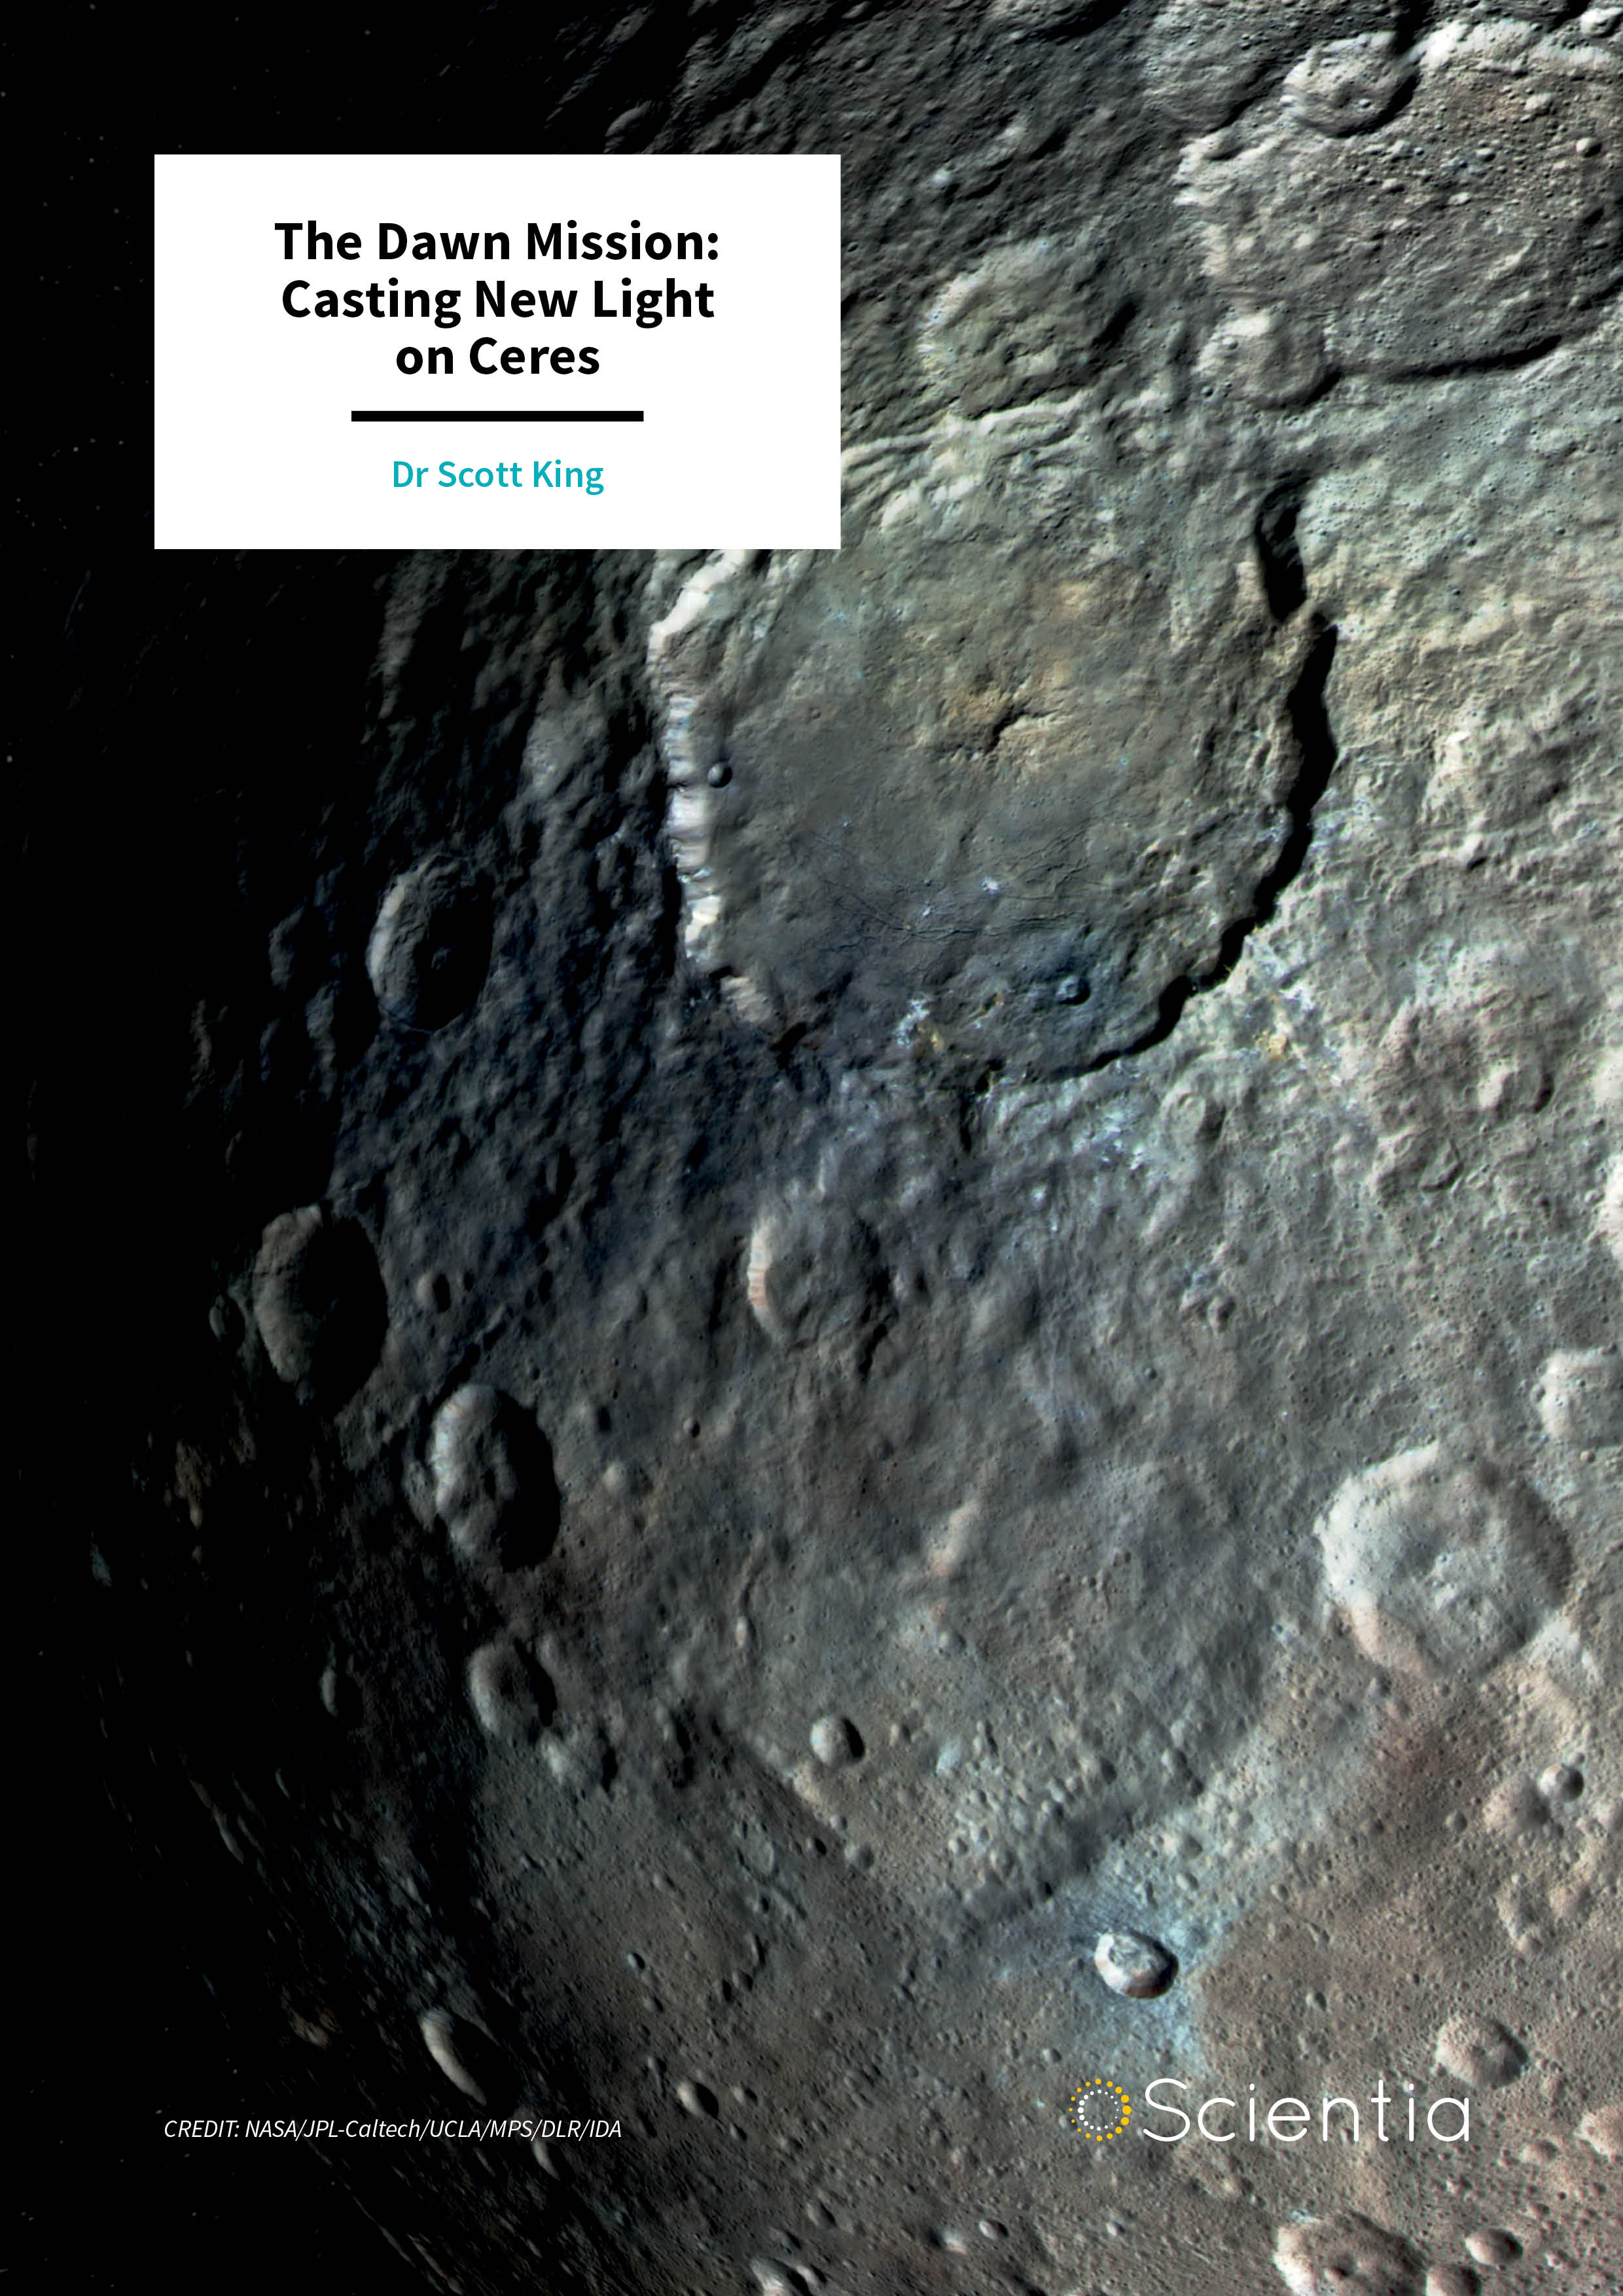 Dr Scott King – The Dawn Mission: Casting New Light on Ceres